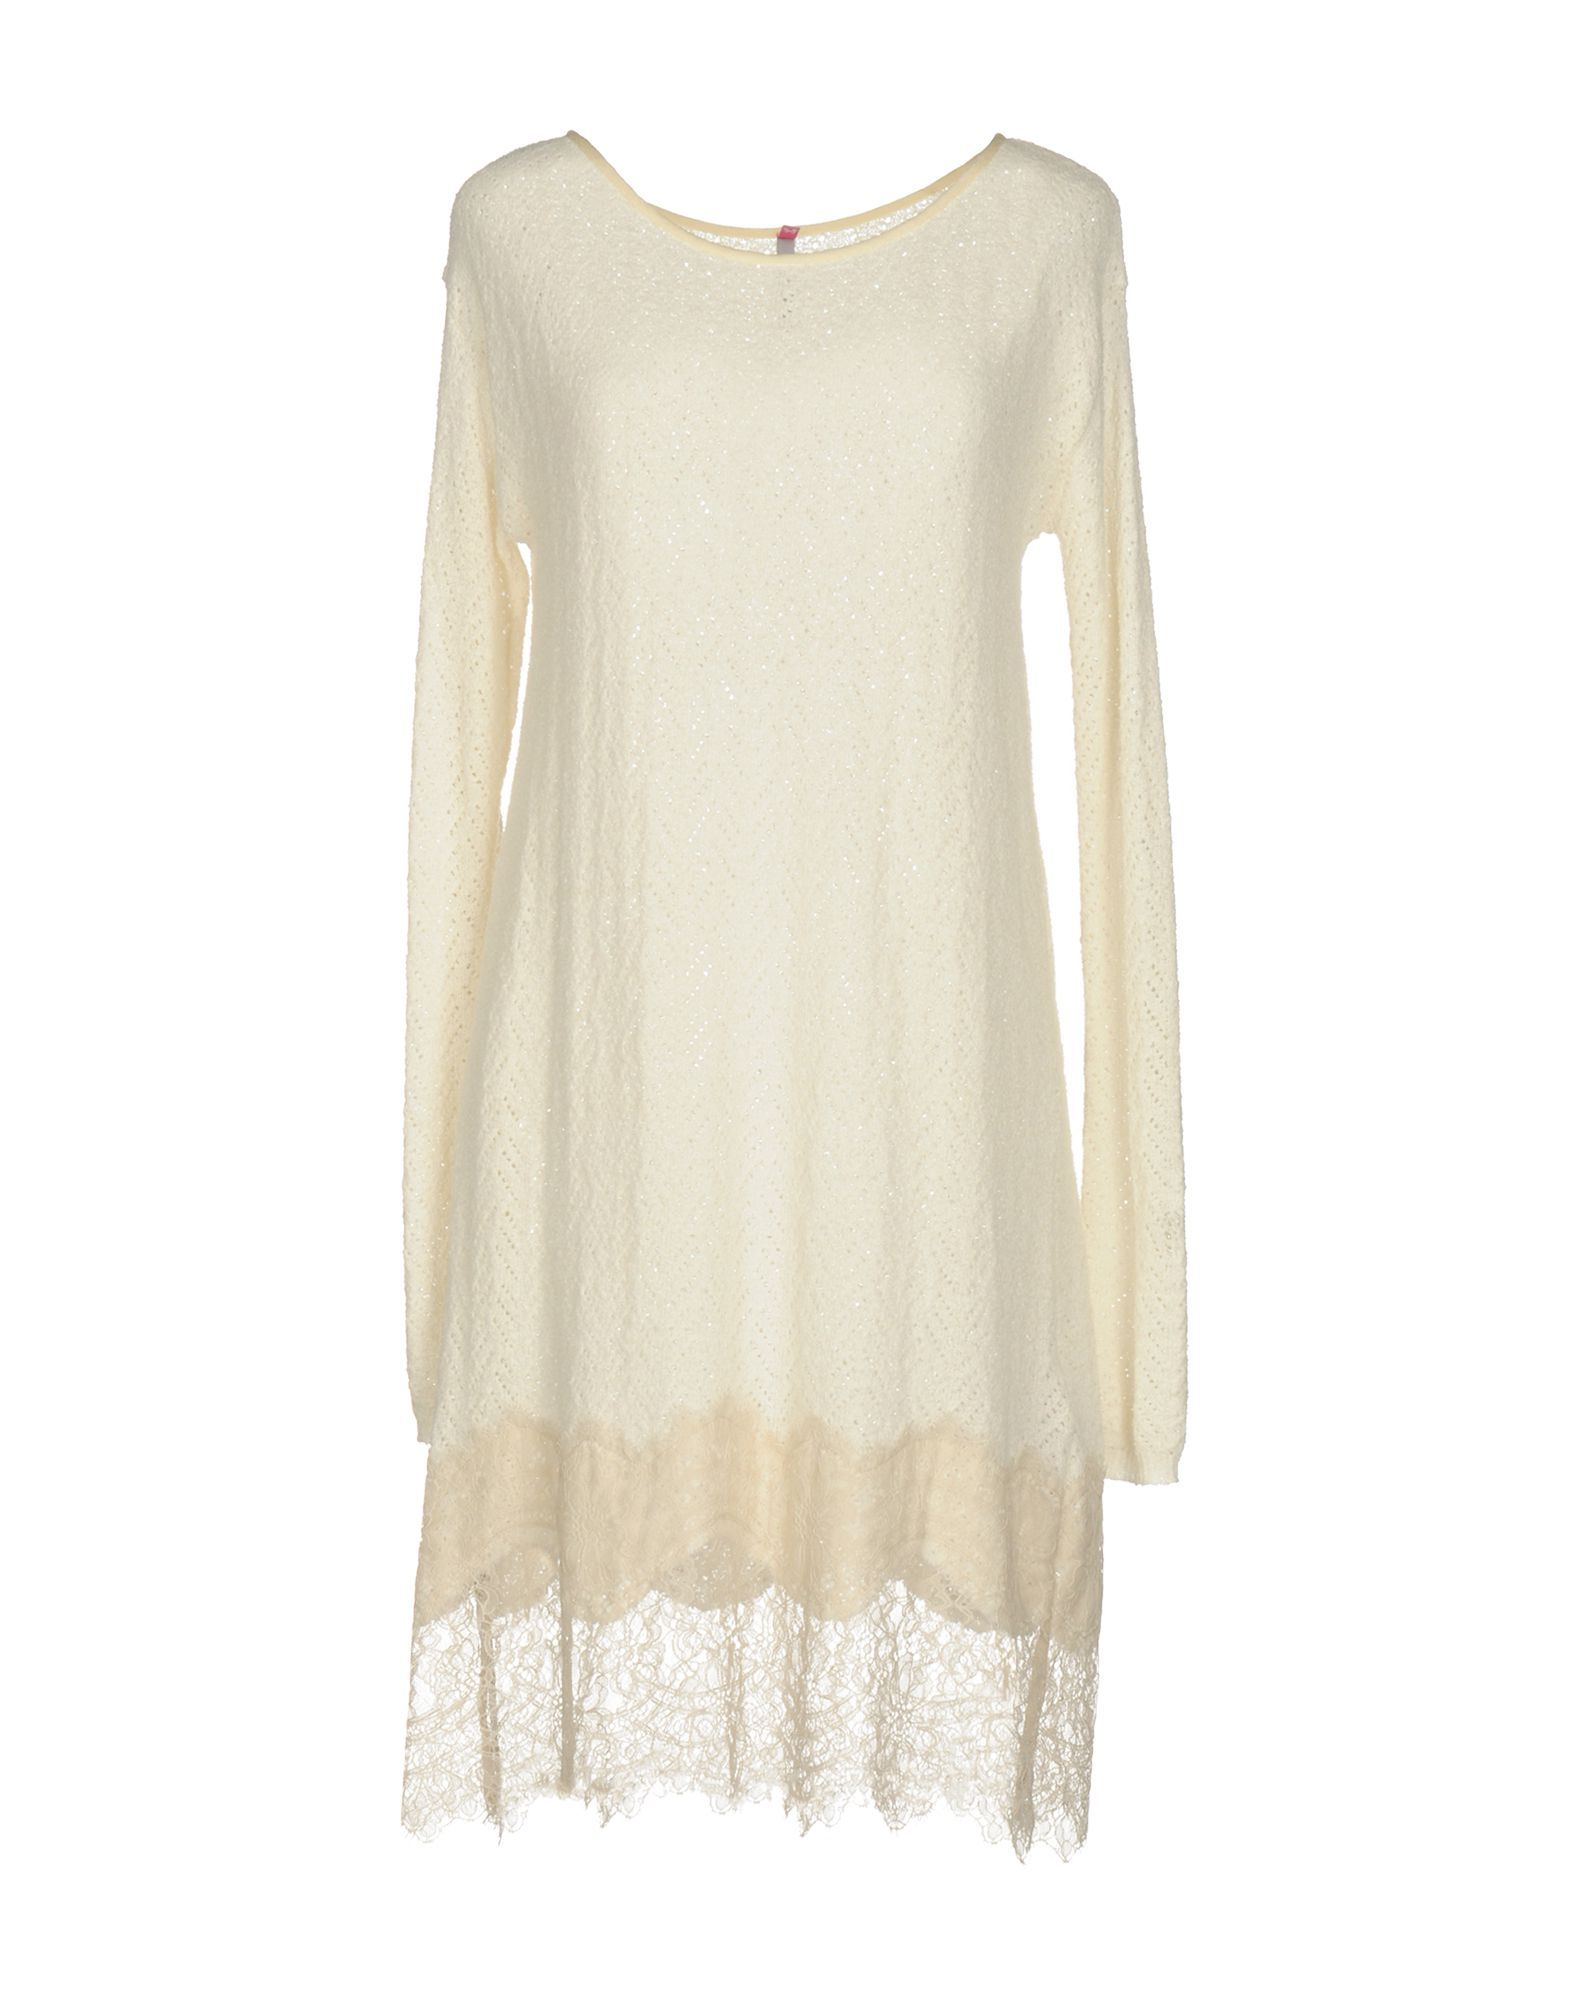 Scee By Twinset Ivory Cotton Lace Long Sleeve Dress